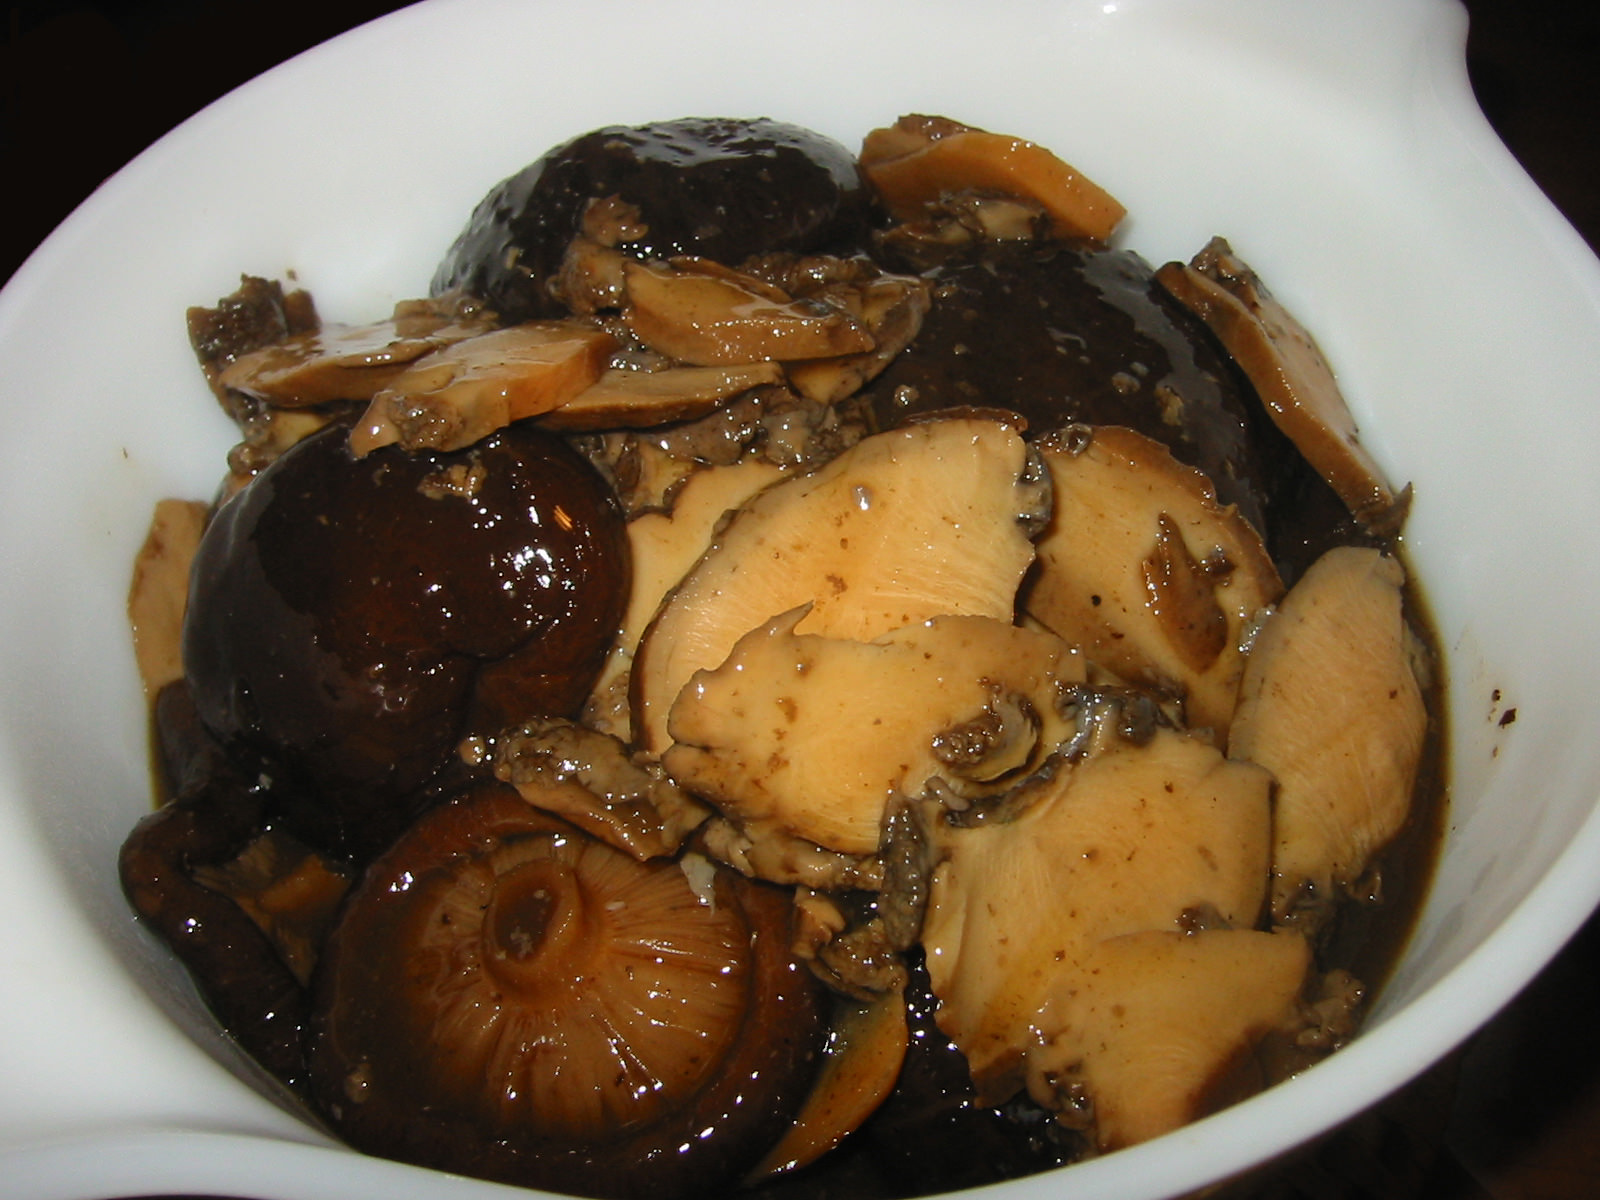 Abalone and mushrooms